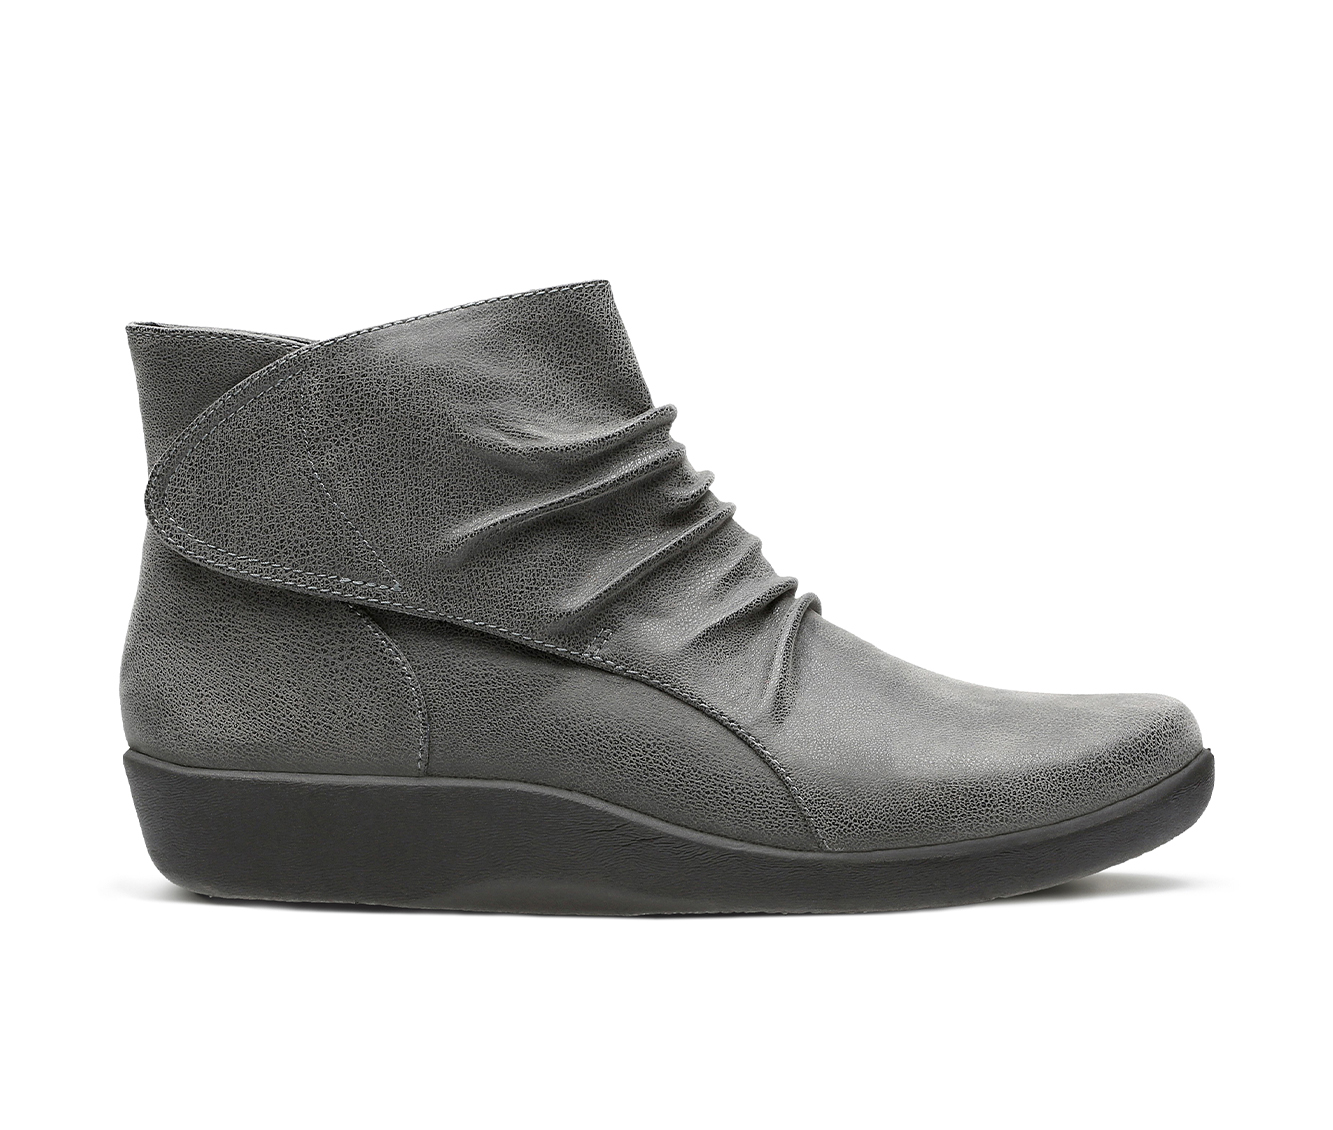 Clarks Sillian Sway Women's Boots (Gray - Canvas)